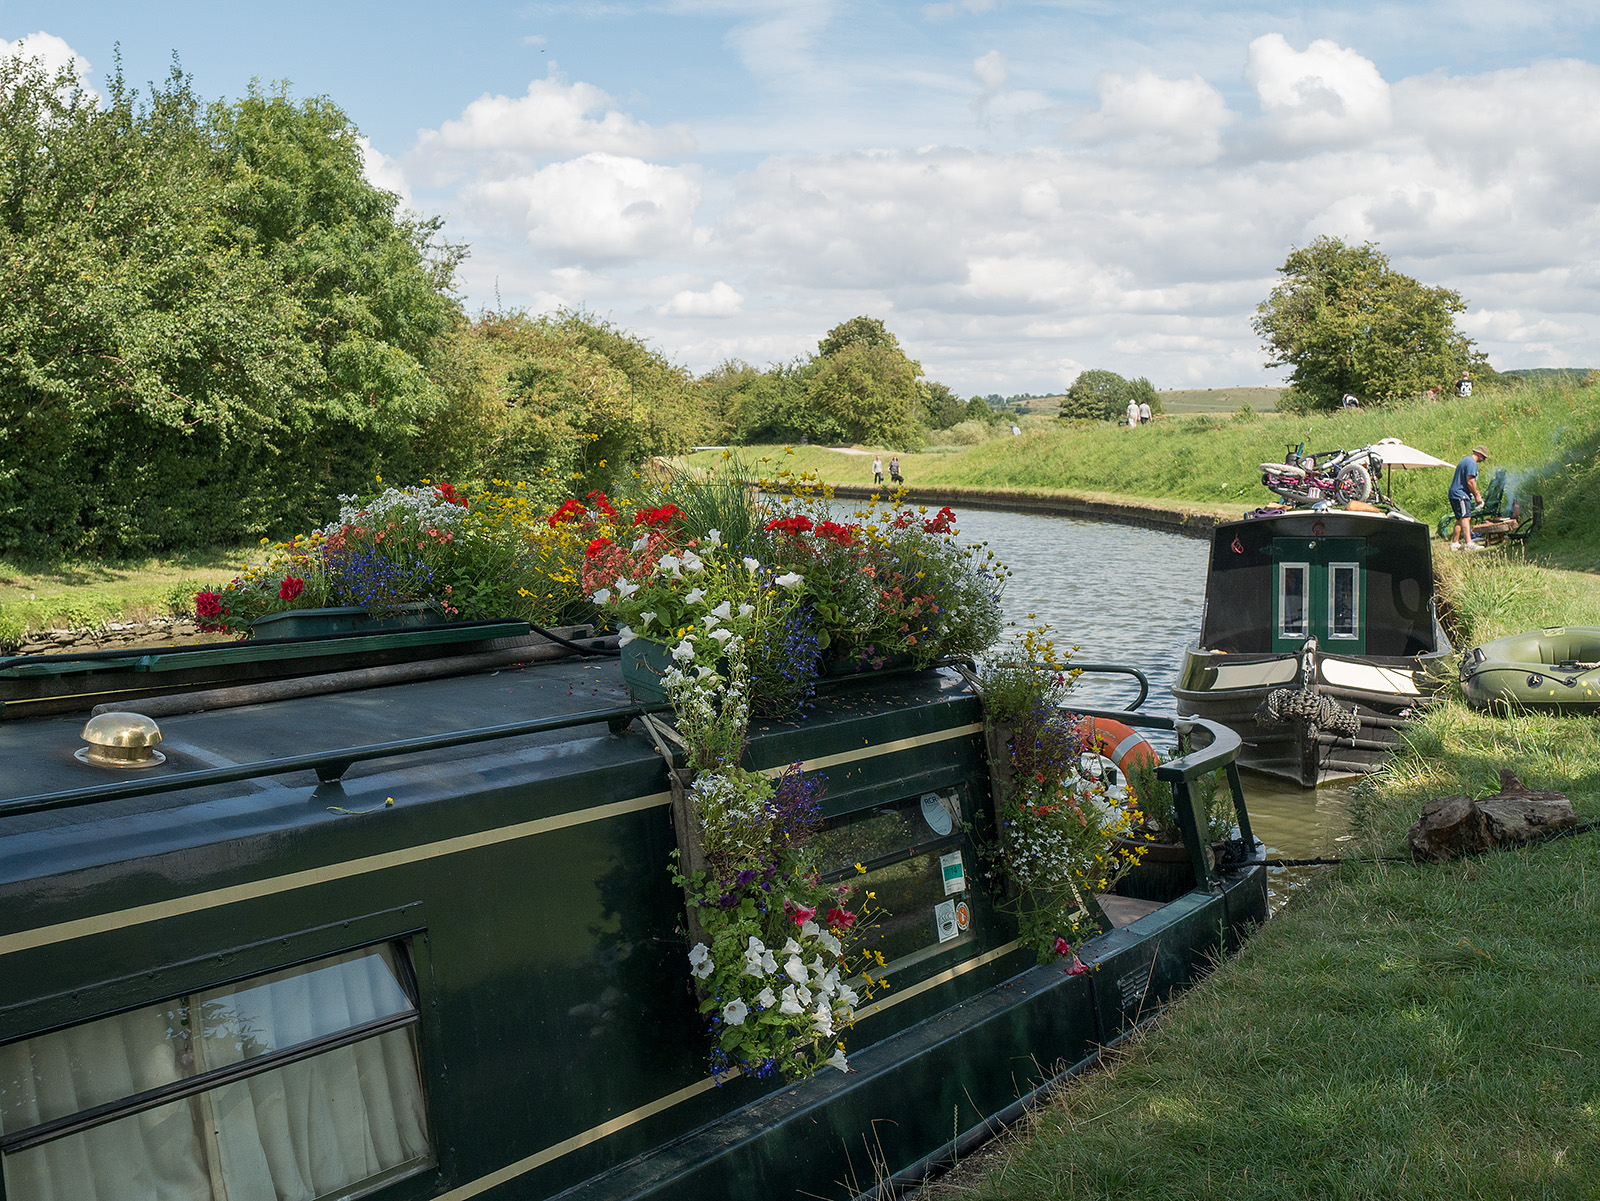 Attractive flowers atop a boat on the canal as it winds its way down the slope north of Marsworth